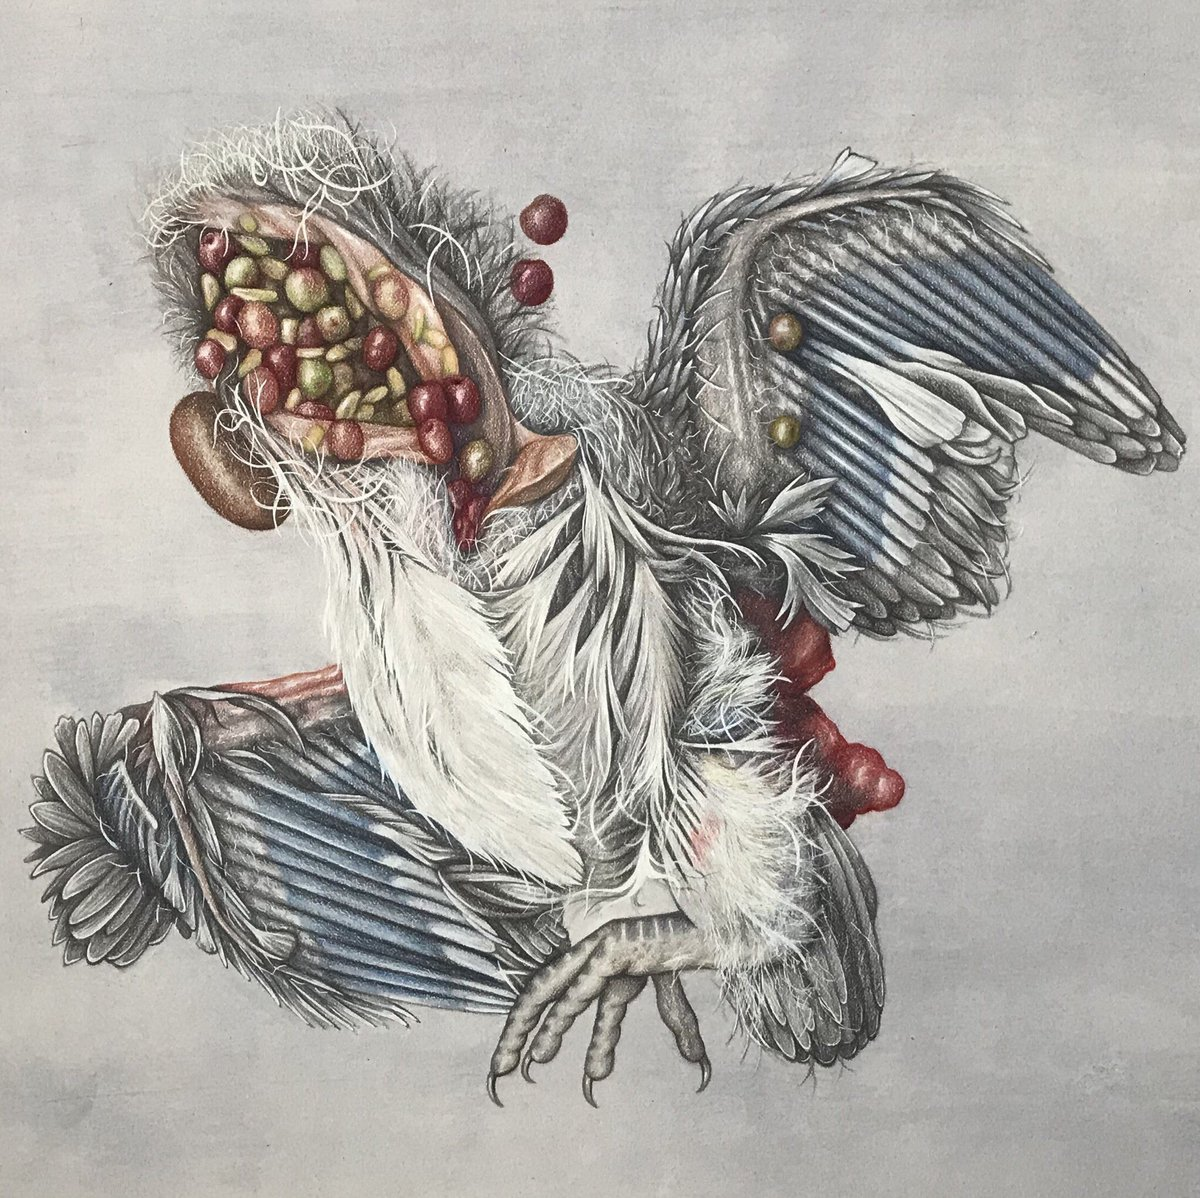 Francesca Corra On Twitter Doing A Series Of Drawings Of Roadkill Dead Animals In London Not Sure What Happened To This One Possibly A Fledgling That Got Hit By A Car And Had